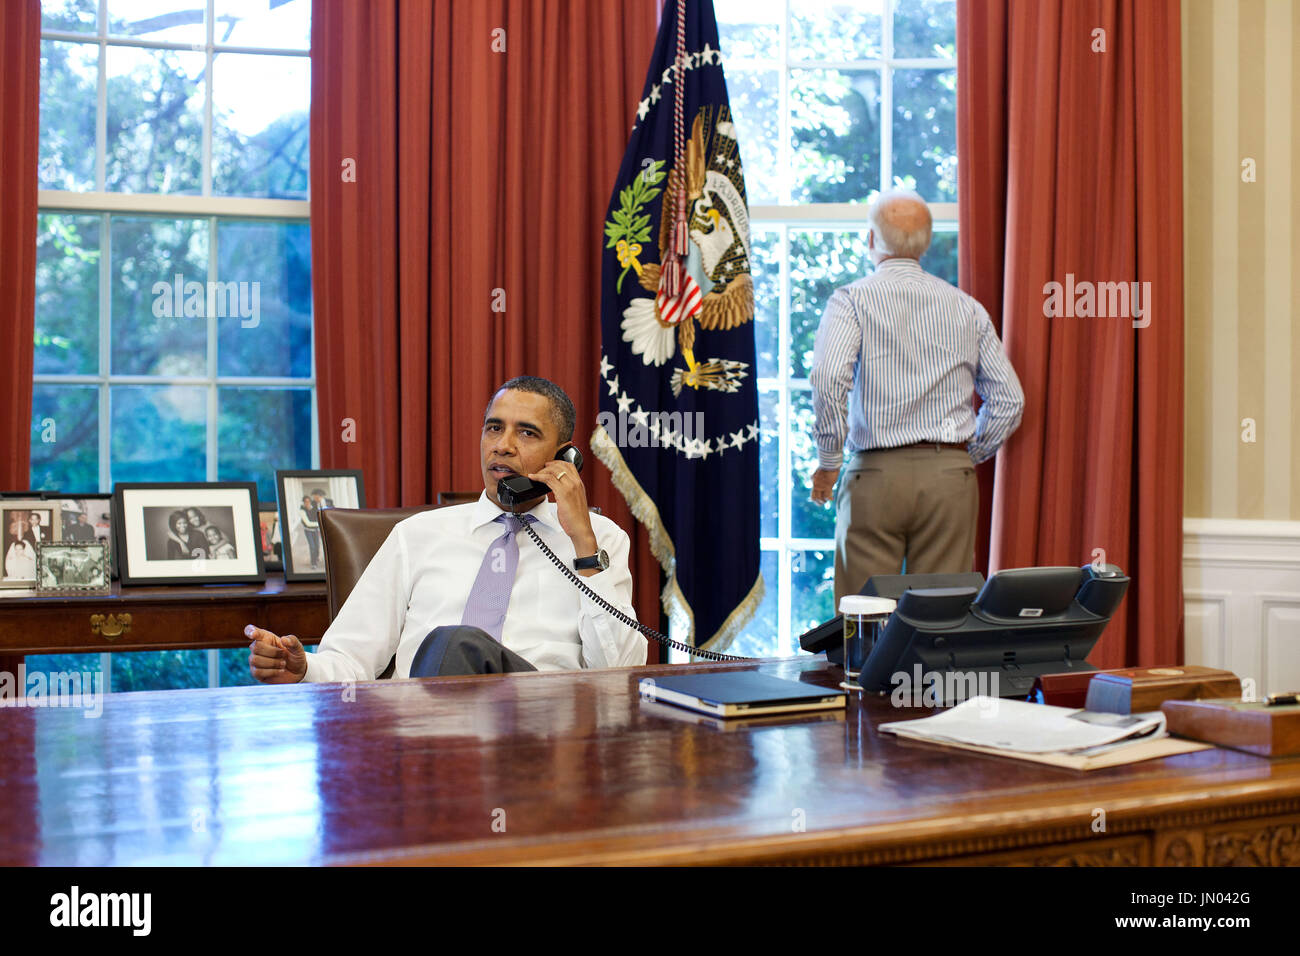 United States Vice President Joe Biden looks out the window as U.S. President Barack Obama talks on the phone with House Speaker John Boehner (Republican of Ohio) in the Oval Office to discuss ongoing efforts in the debt limit and deficit reduction talks, Sunday, July 31, 2011. .Mandatory Credit: Pete Souza - White House via CNP Stock Photo